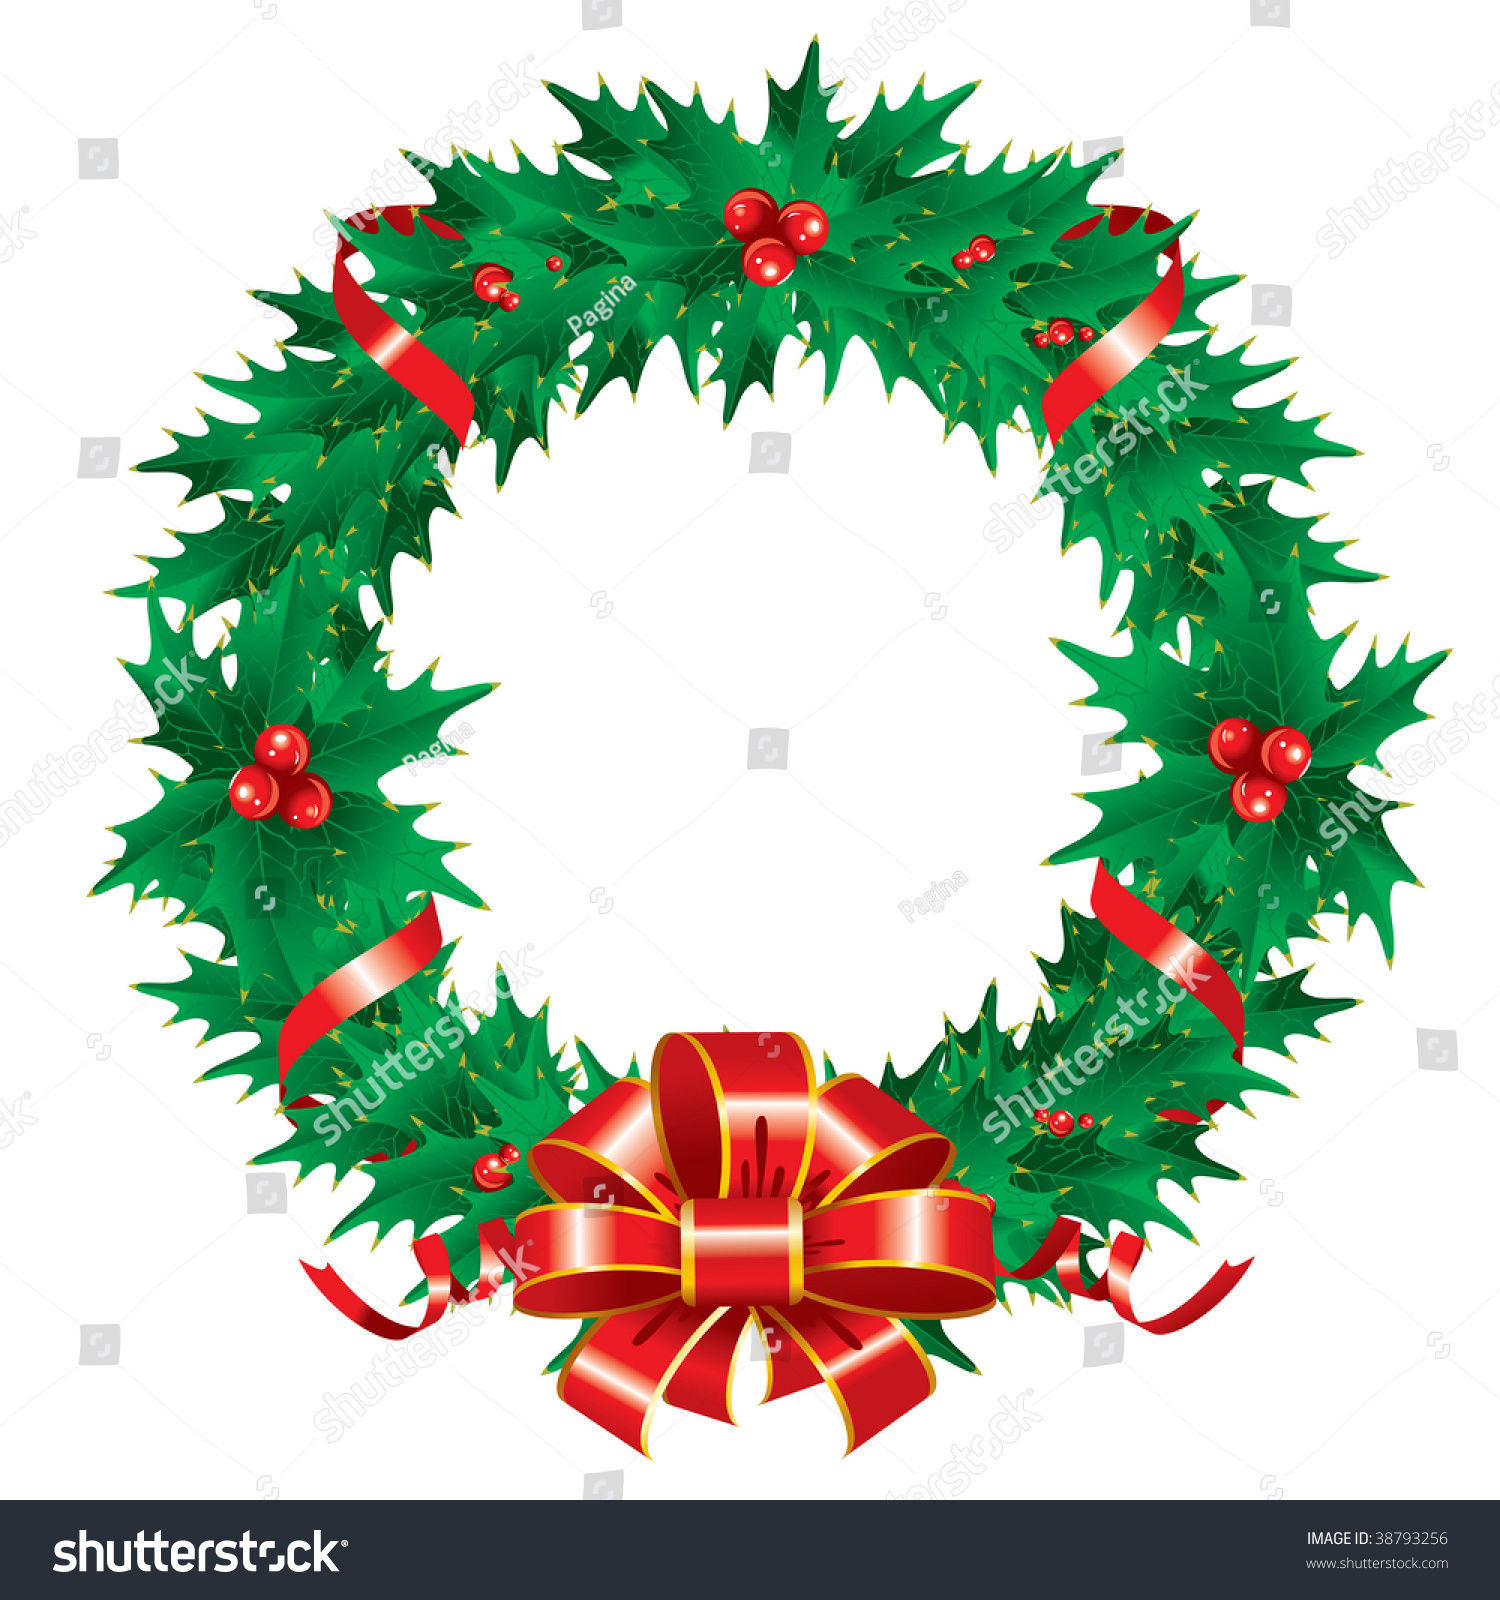 Rustic Christmas Wreath Vector – yvqg